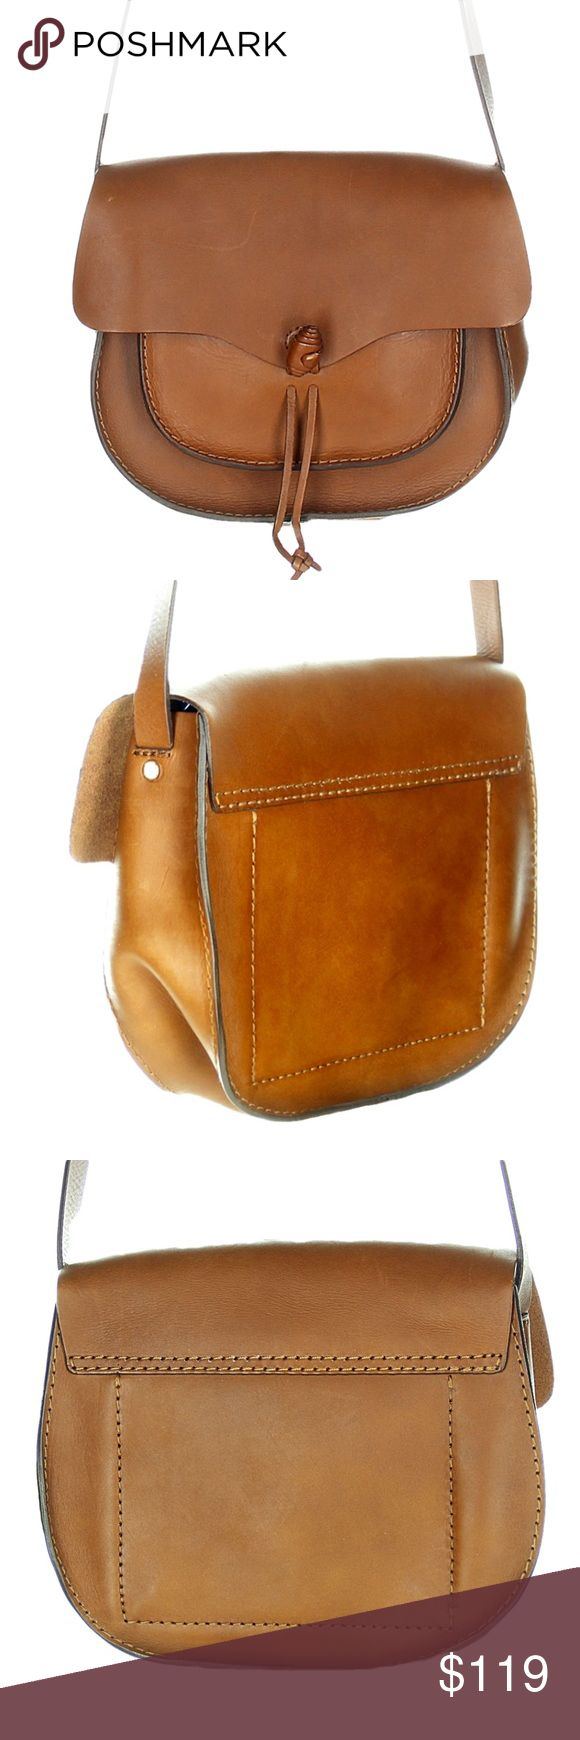 """Madewell Savannah Saddlebag Crossbody Handbag Madewell The Savannah Saddle Bag  •Metal toggle closure with flap. •Interior pocket. •21 5/8"""" shoulder strap. •9 1/16""""H x 10 5/8""""W x 3 3/8""""D. •Import.  •Please note: As it is made of a natural material, each bag varies slightly in texture and color.  Marks in the finish from being on display.  Note: There is a mark through the Madewell label to prevent in store returns.    We are not affiliated with or endorsed by Madewell.  Pictures of the…"""